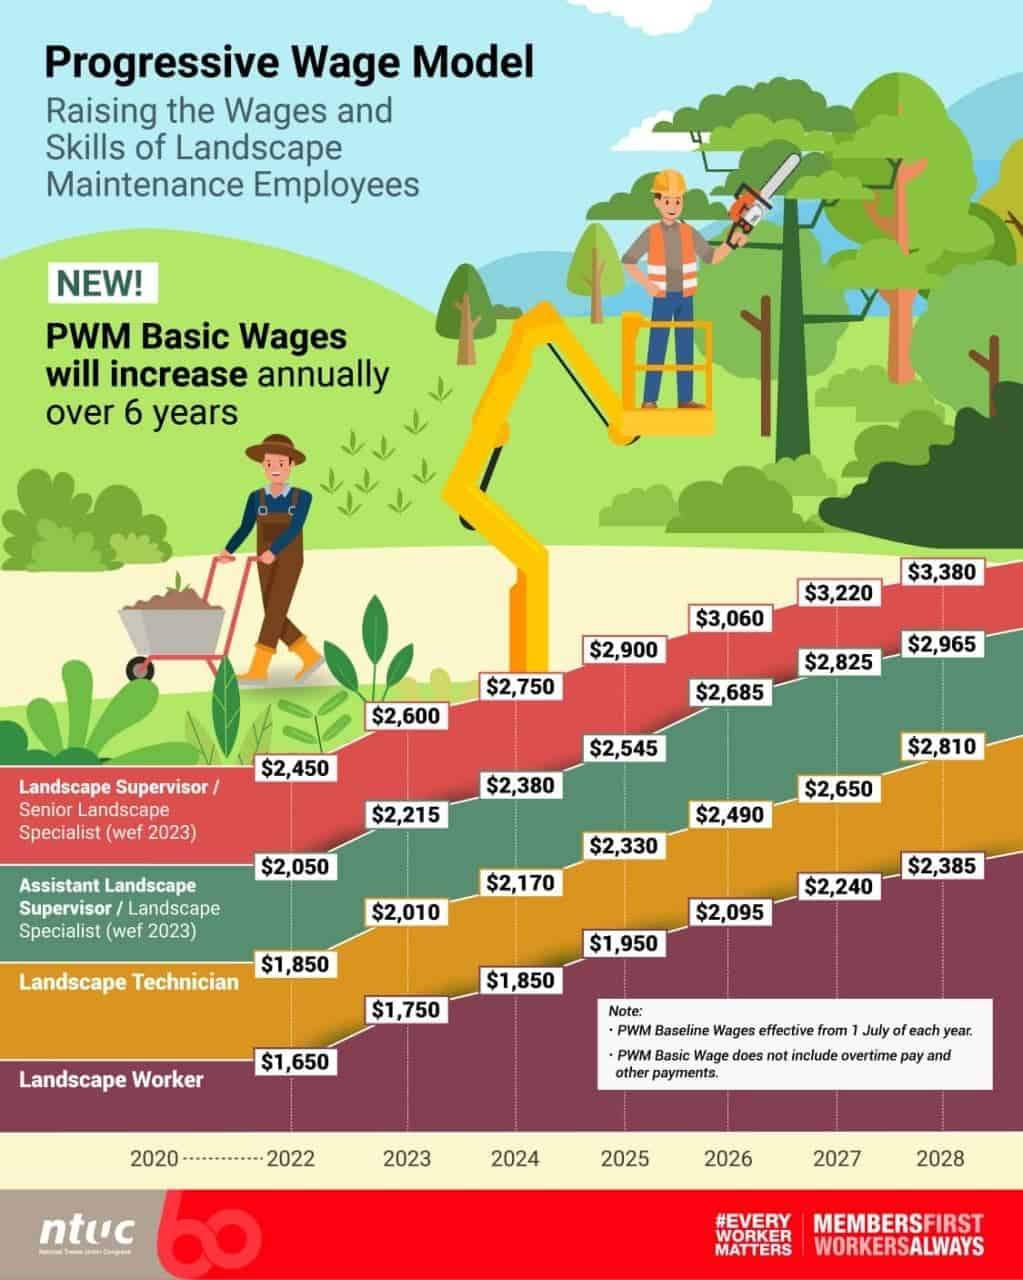 landscape, Landscape workers will see their wages rise by 6.3% under the Progressive Wage Model